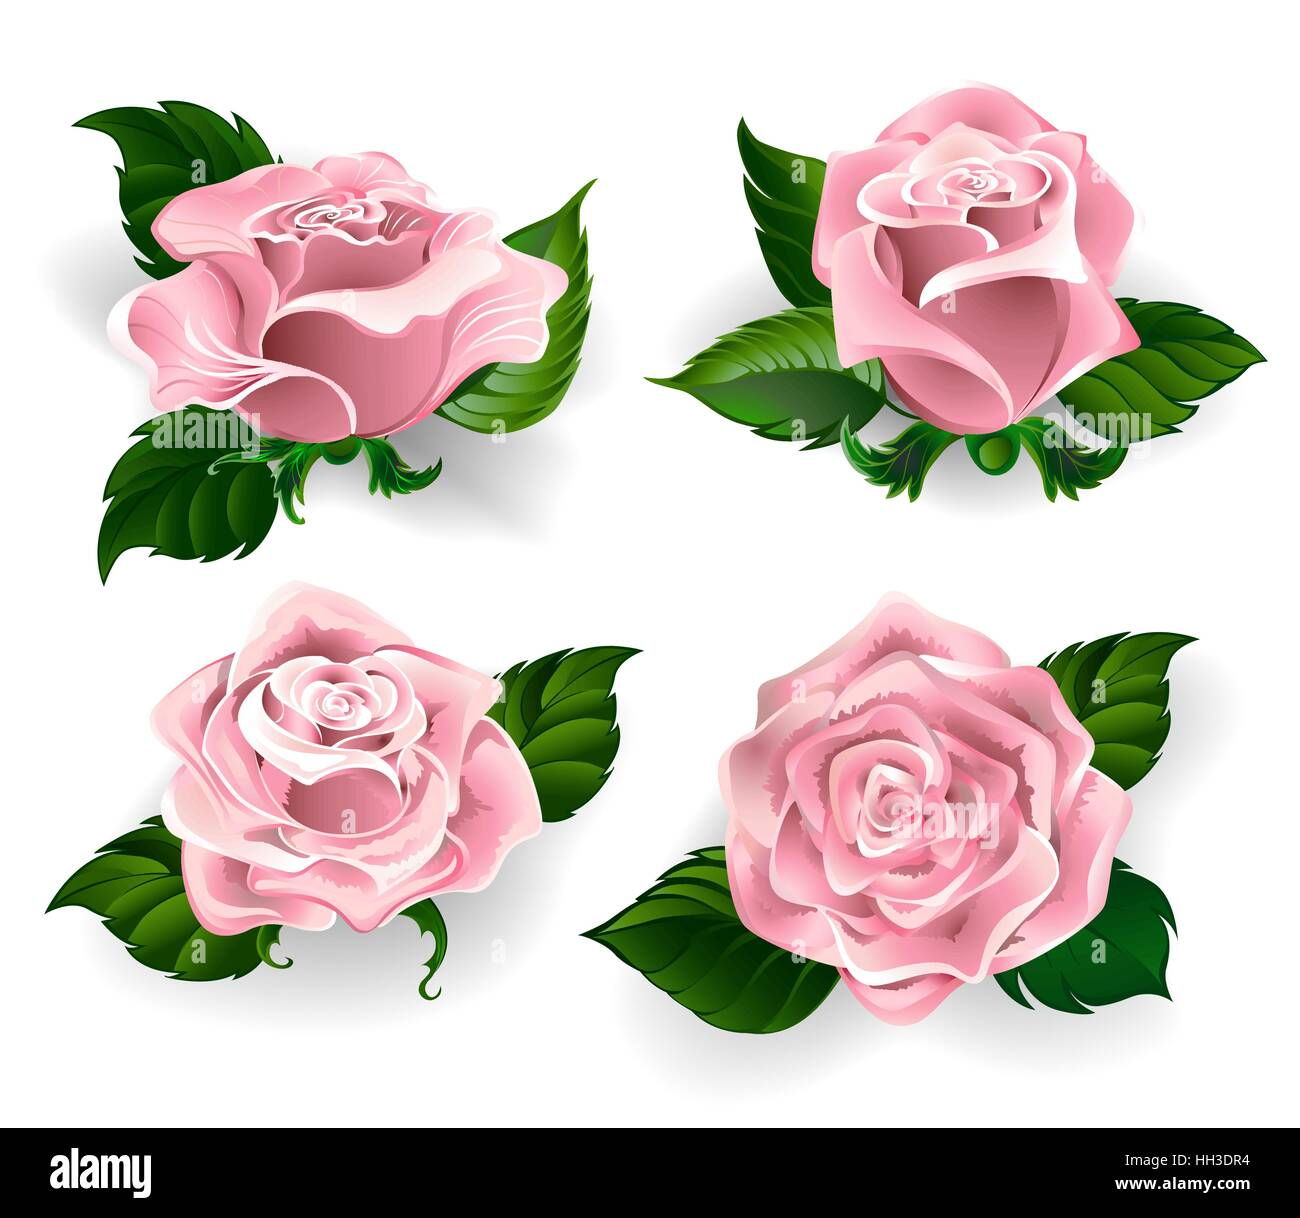 Set of painted roses rose quartz color, with green leaves on a white background - Stock Vector